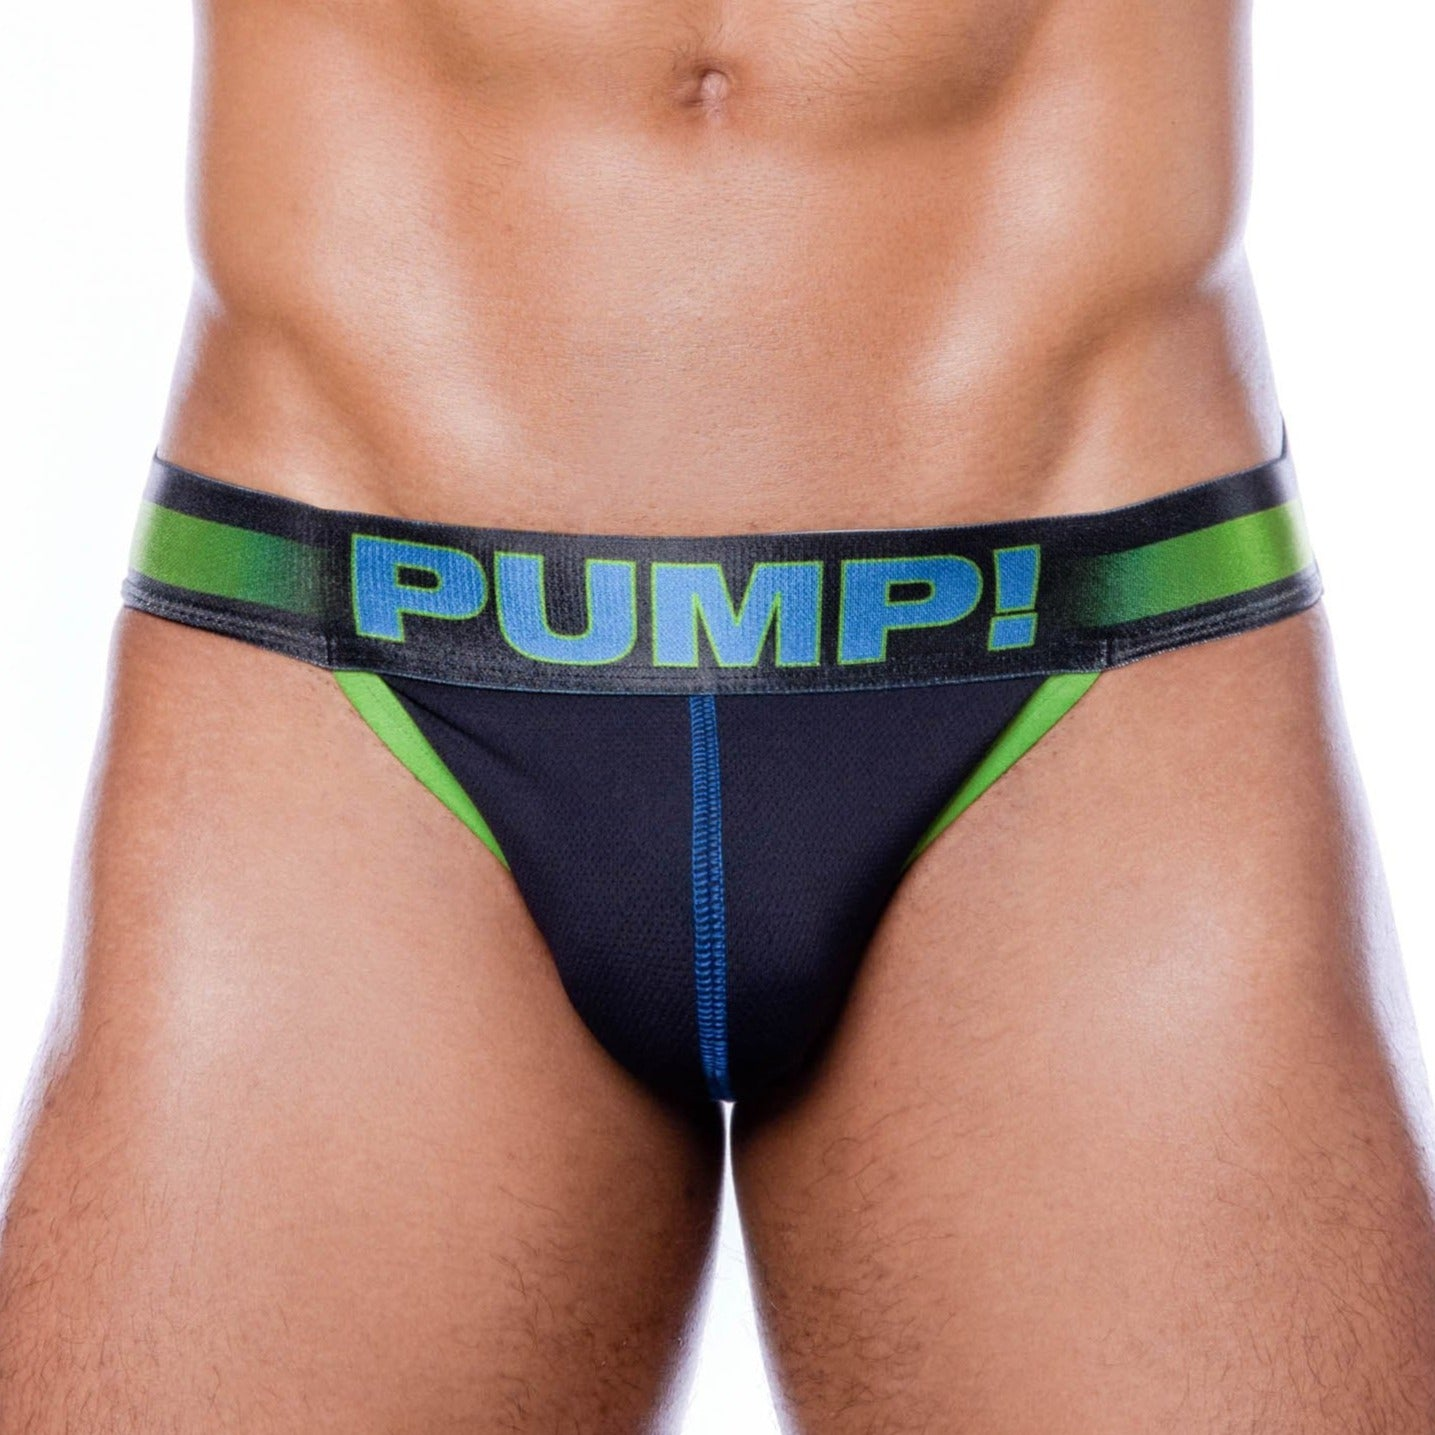 Play SideCut Brief - Green